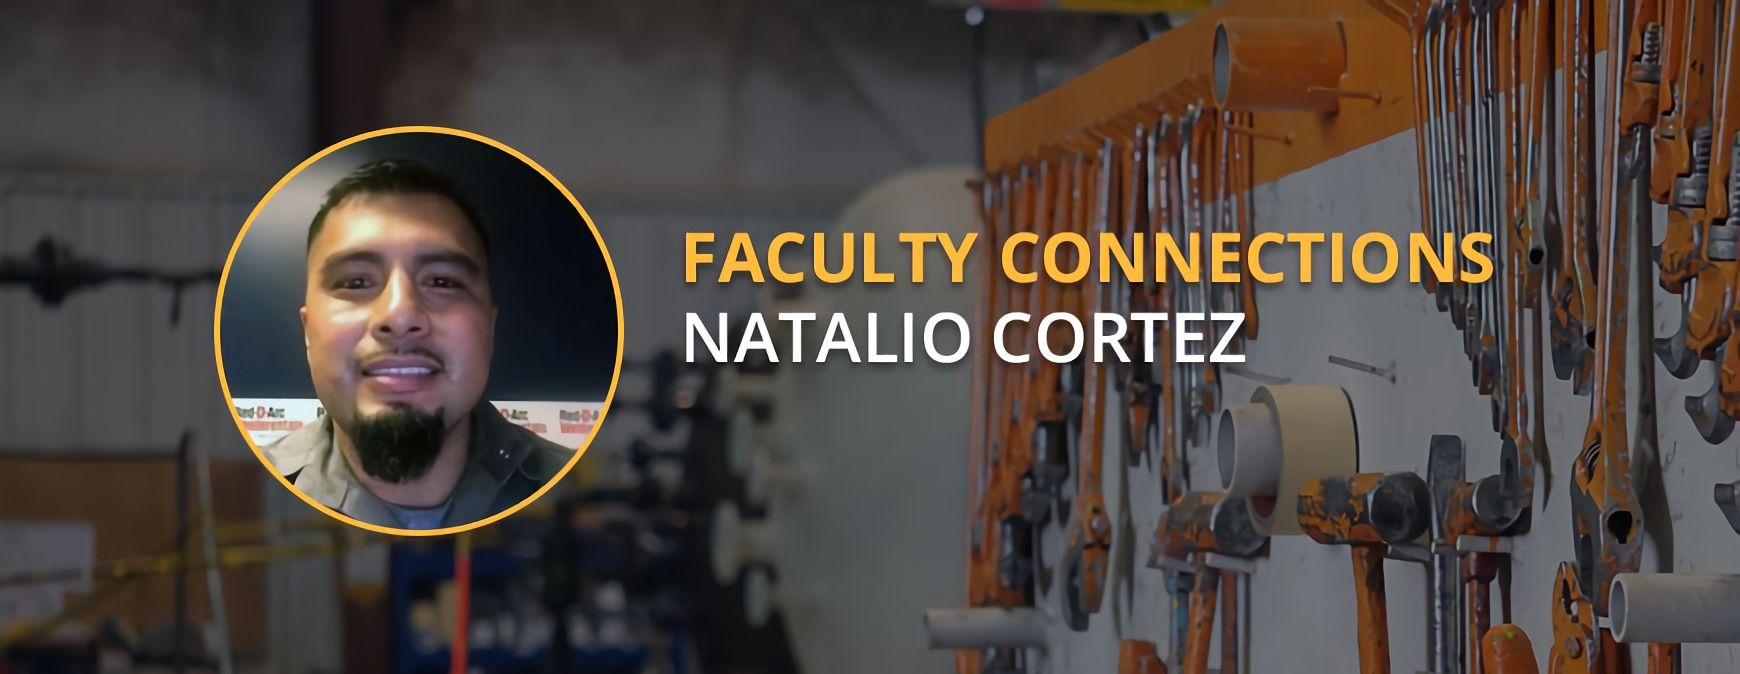 Natalio Cortez faculty connection